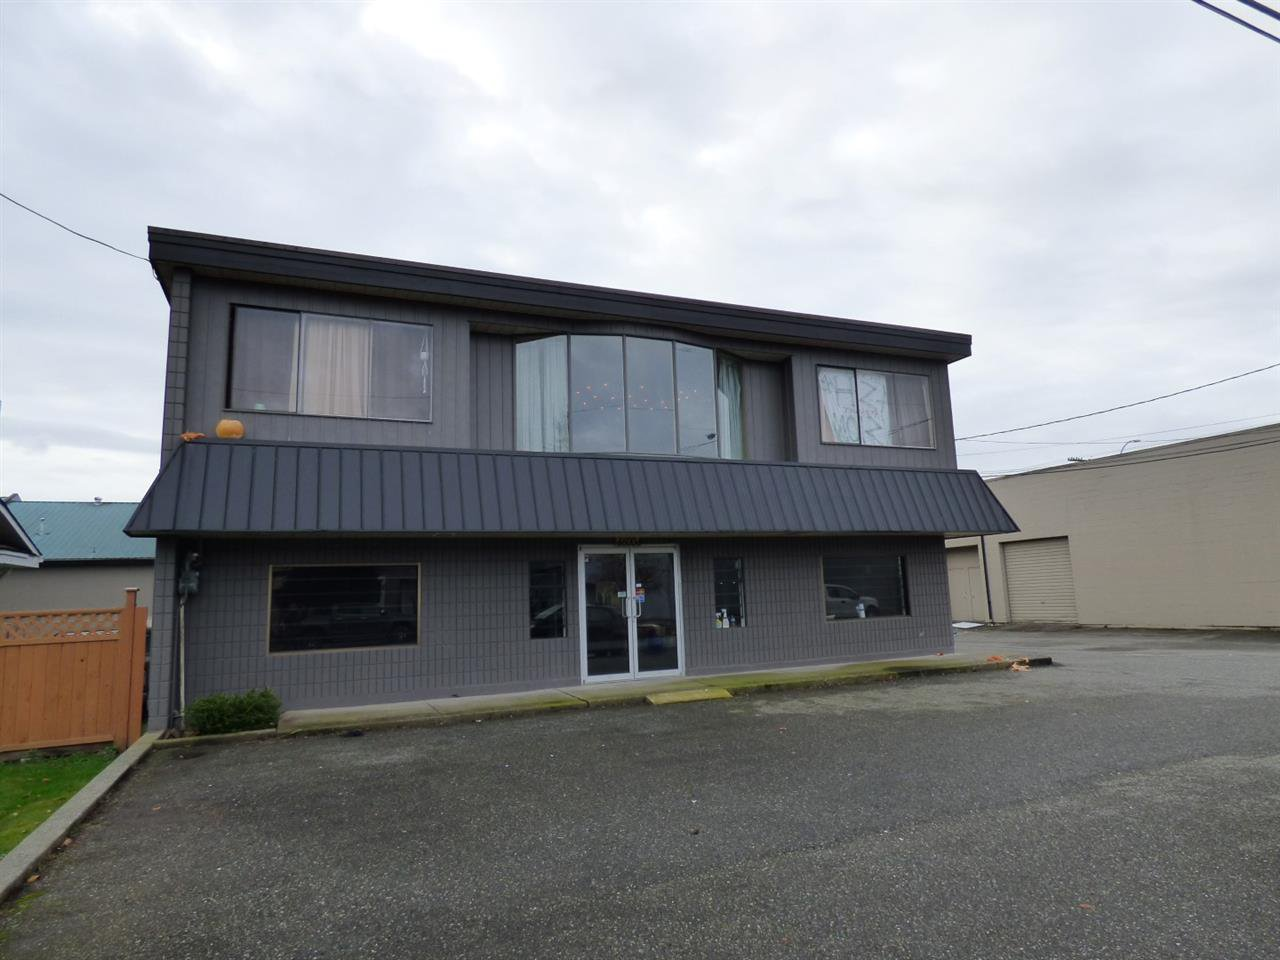 Main Photo: A 46000 FIFTH Avenue in Chilliwack: Chilliwack E Young-Yale Retail for lease : MLS®# C8022376